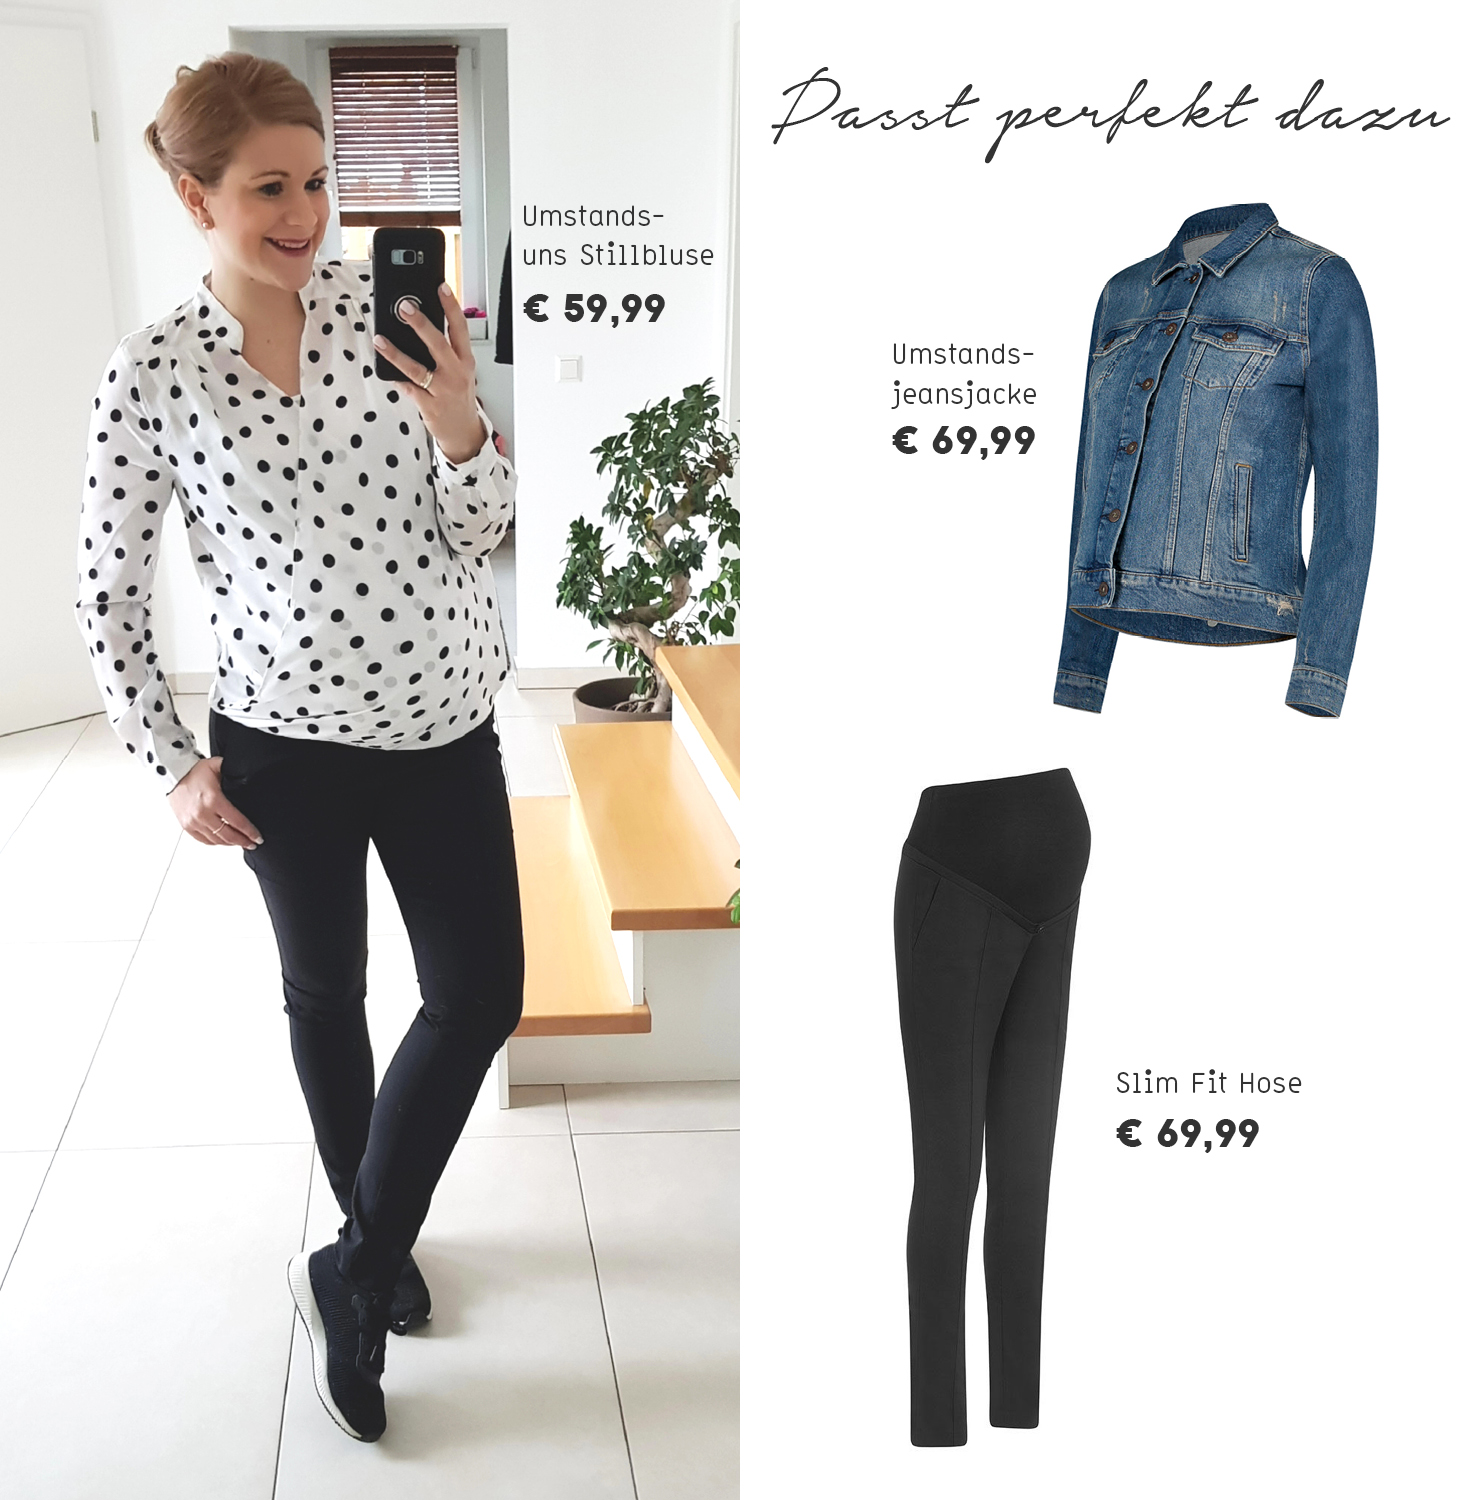 Umstandsmode Umstandsbluse Ideen Trends Outfit Drei nwk0OP